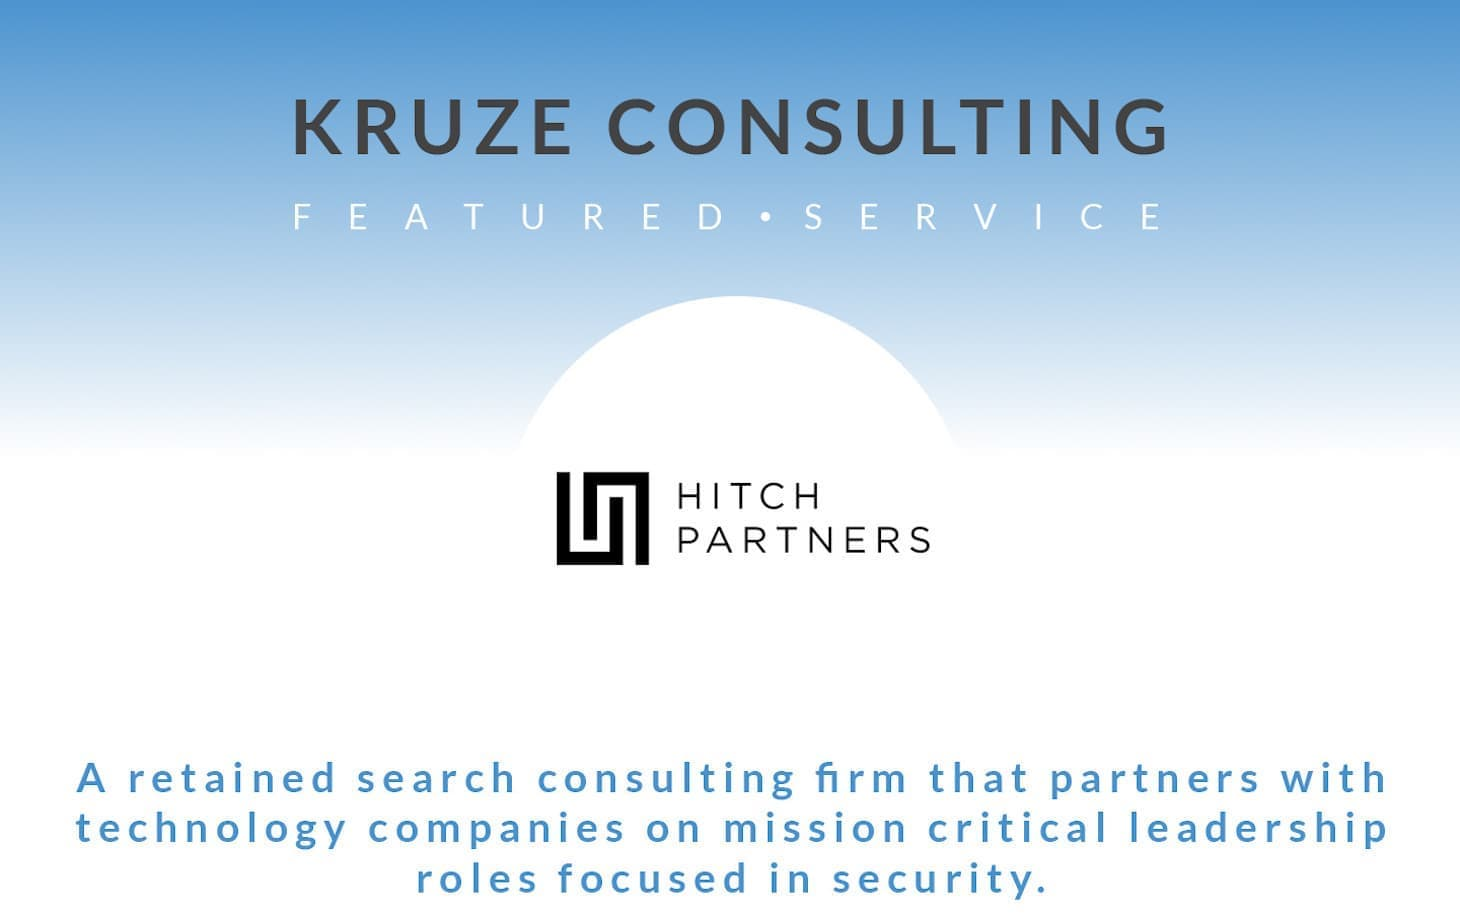 Featured Service - Hitch Partners